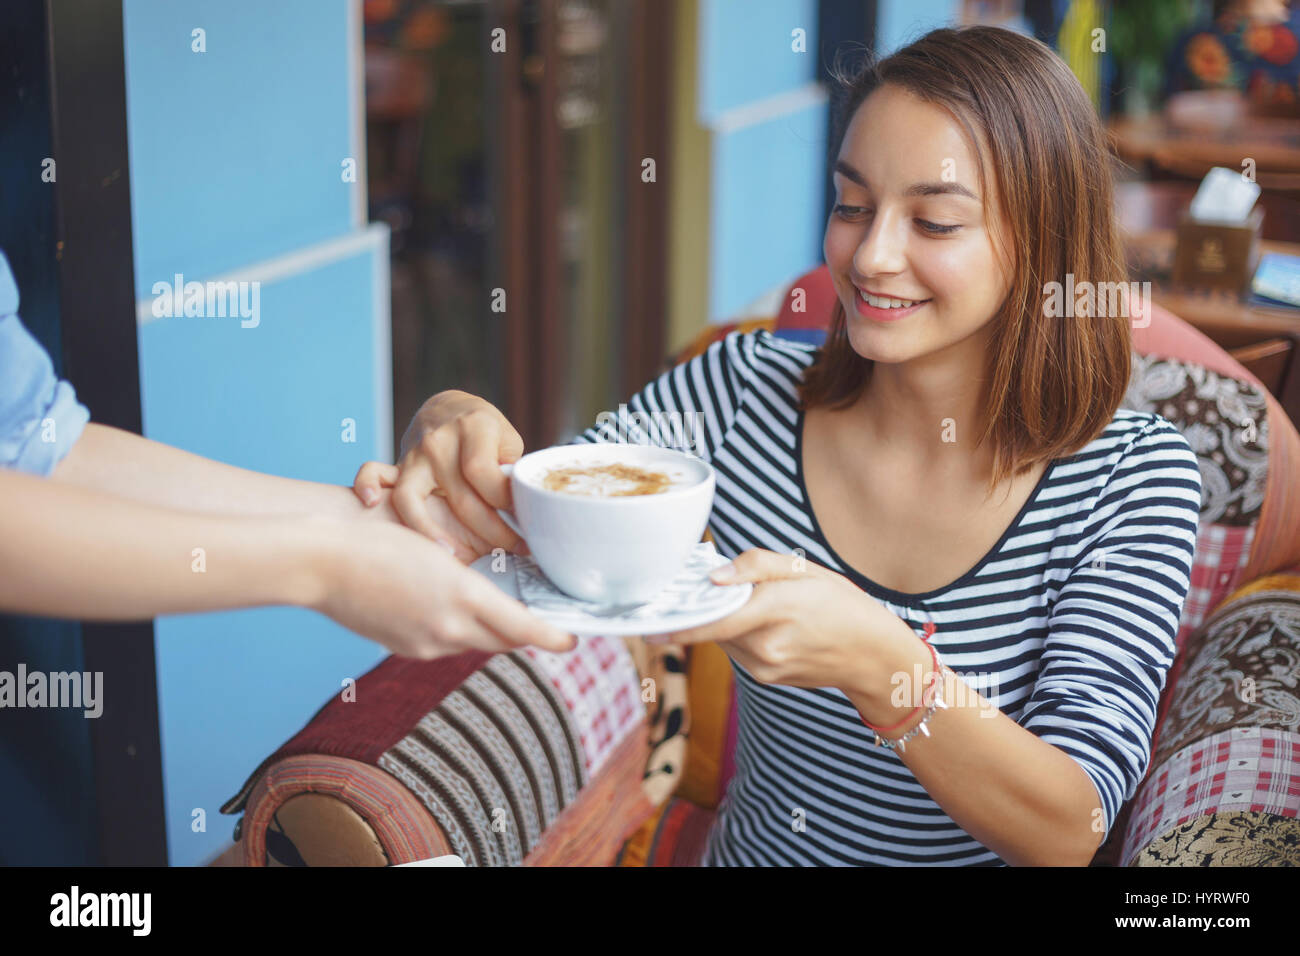 Young woman sitting indoor in urban cafe. Cafe city lifestyle. Casual portrait of teenager girl - Stock Image